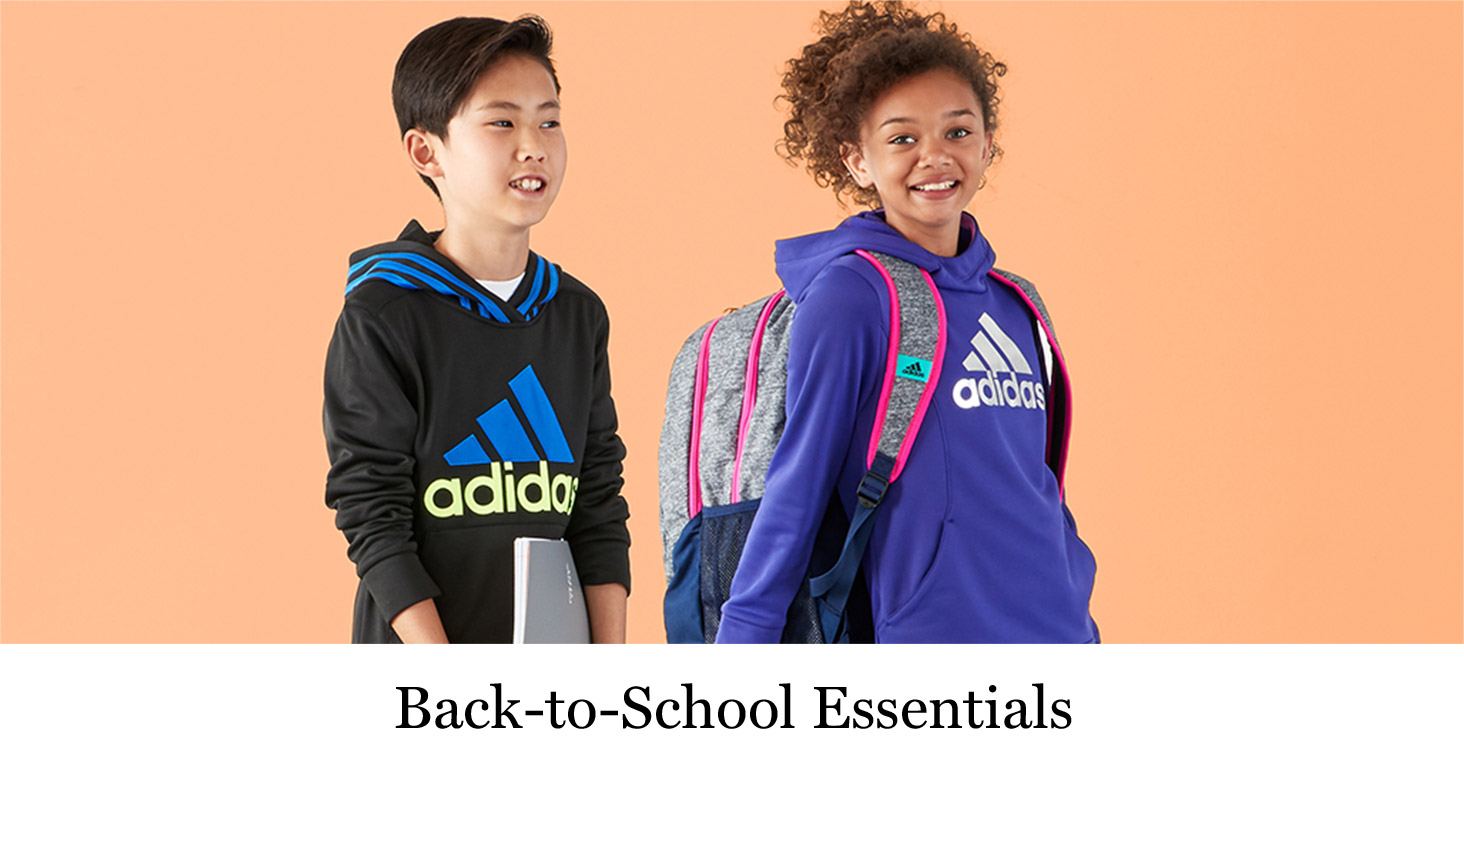 Back-to-School Essentials